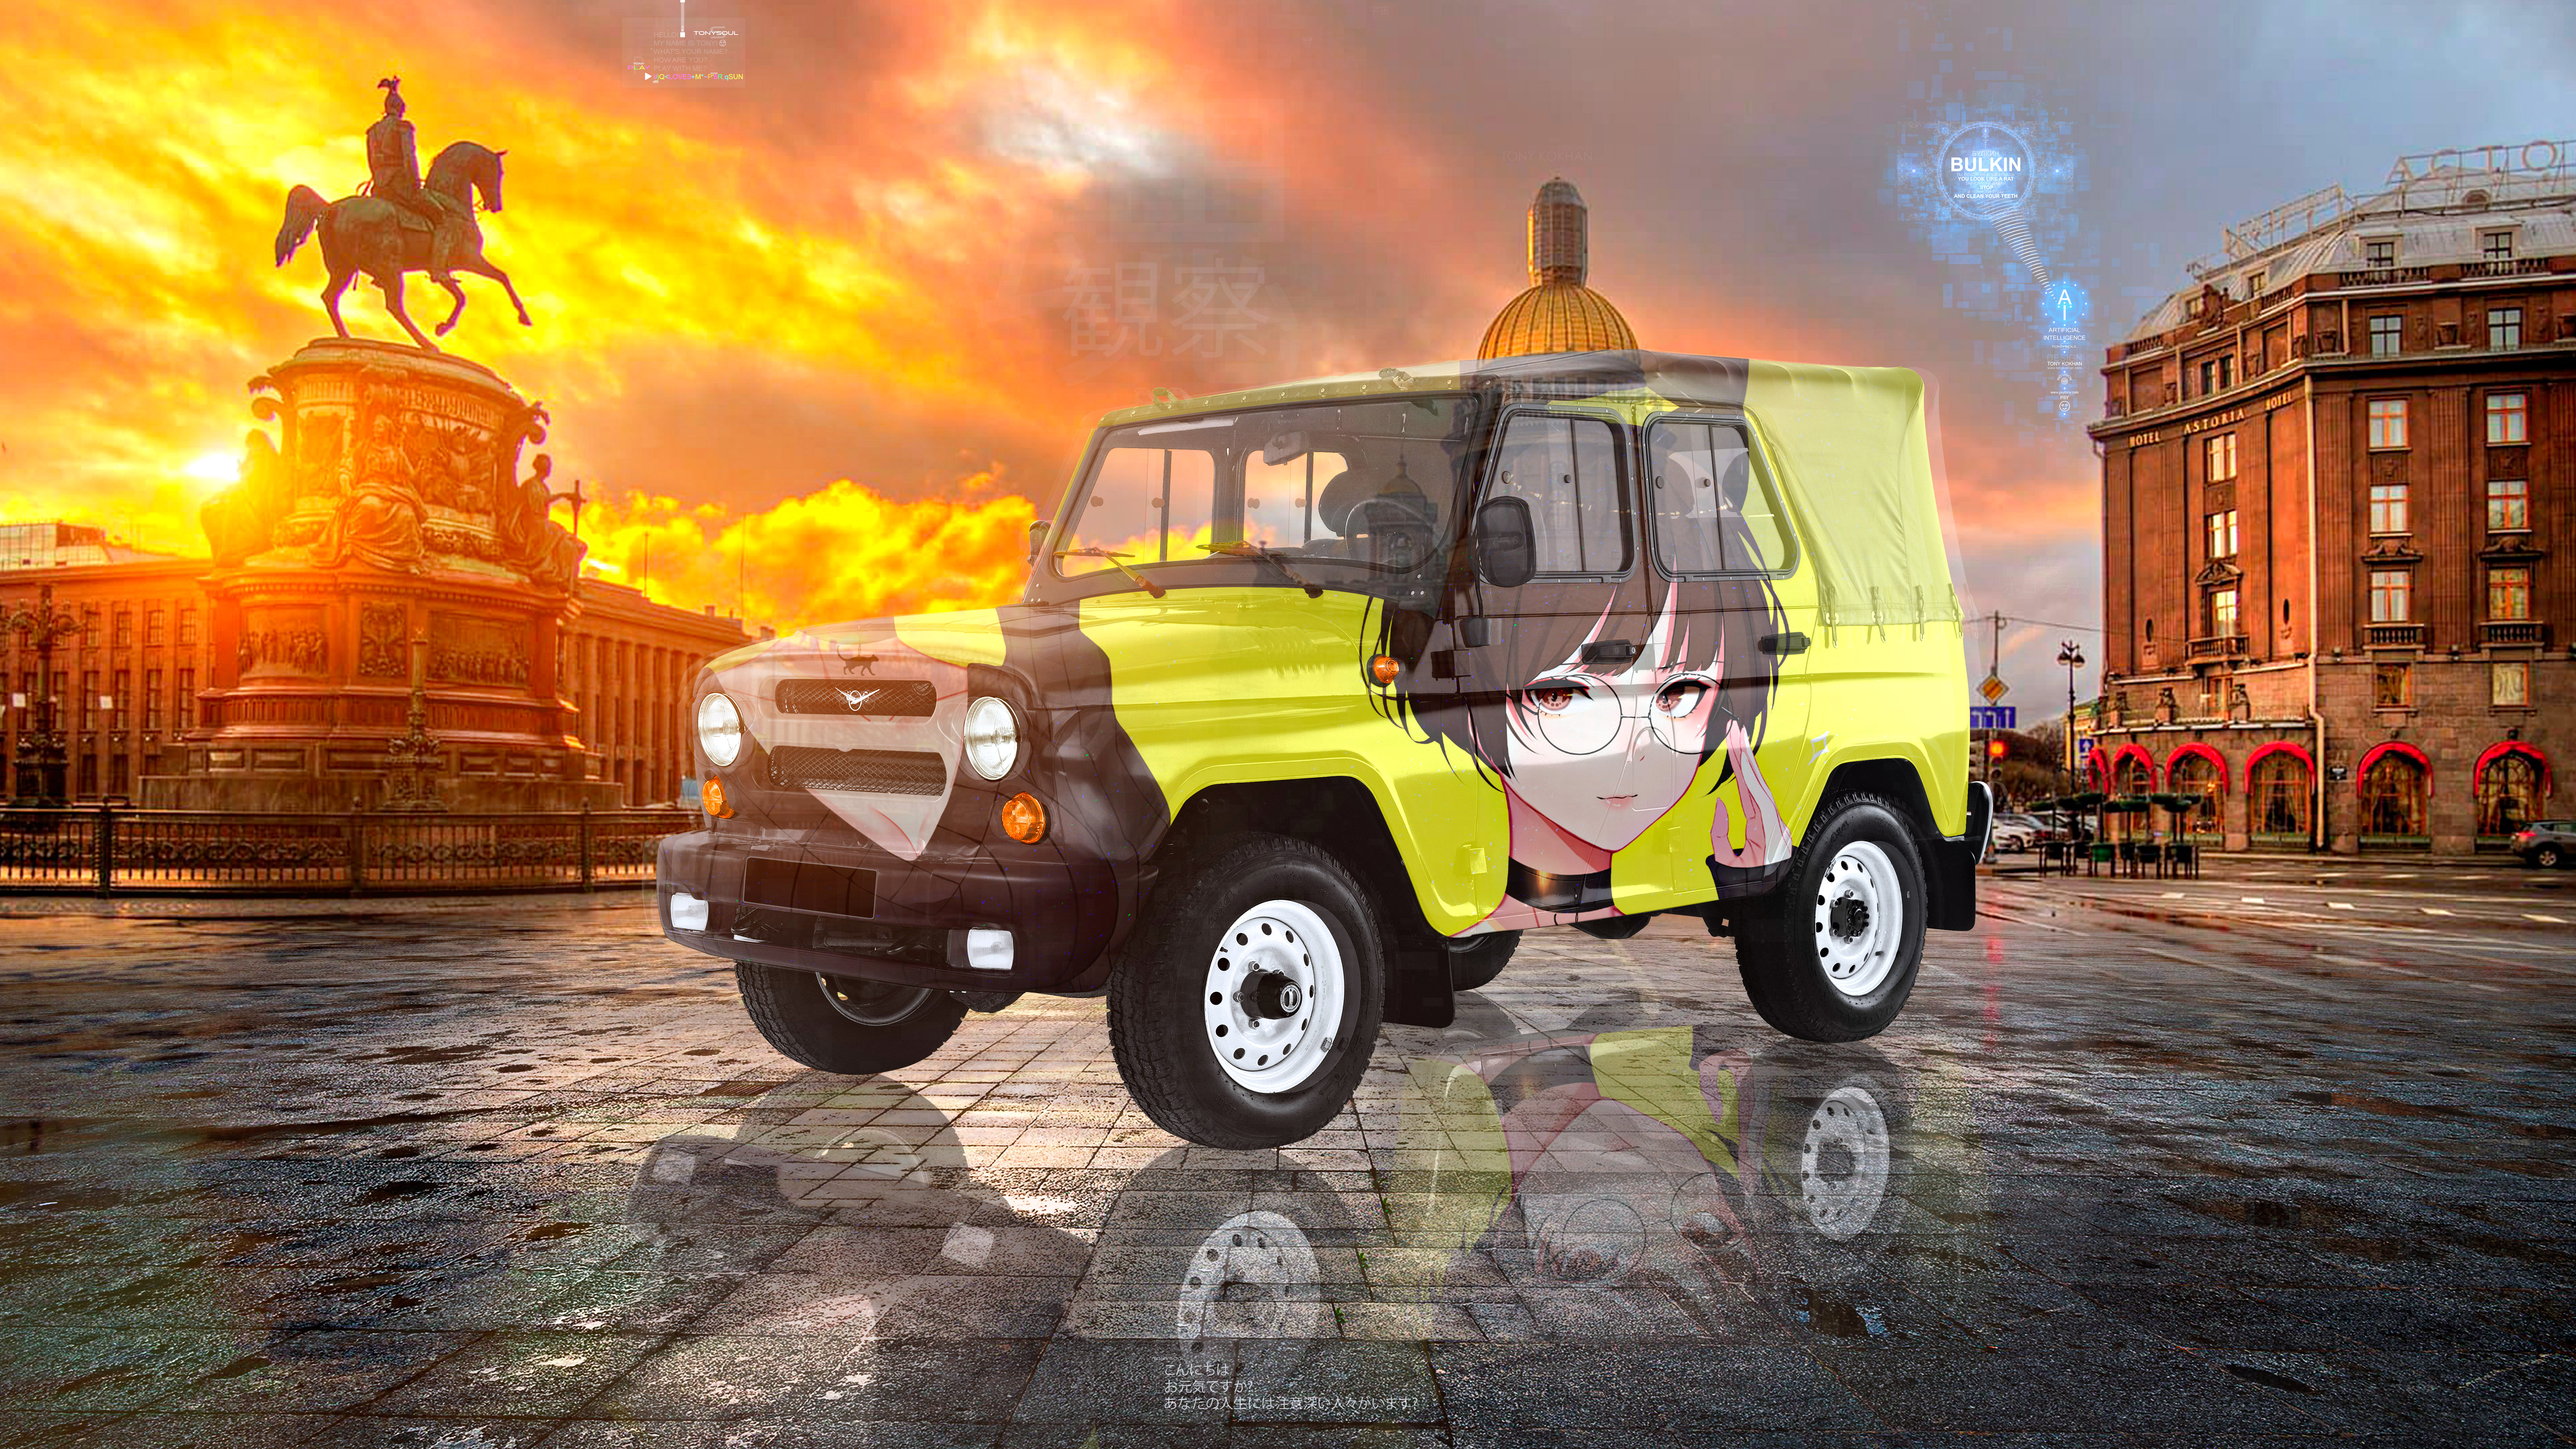 UAZ-Hunter-Super-Anime-Girl-Crystal-Observation-Soul-Saint-Petersburg-Artificial-Intelligence-Bulkin-Car-2021-Multicolors-8K-Wallpapers-by-Tony-Kokhan-www.el-tony.com-image